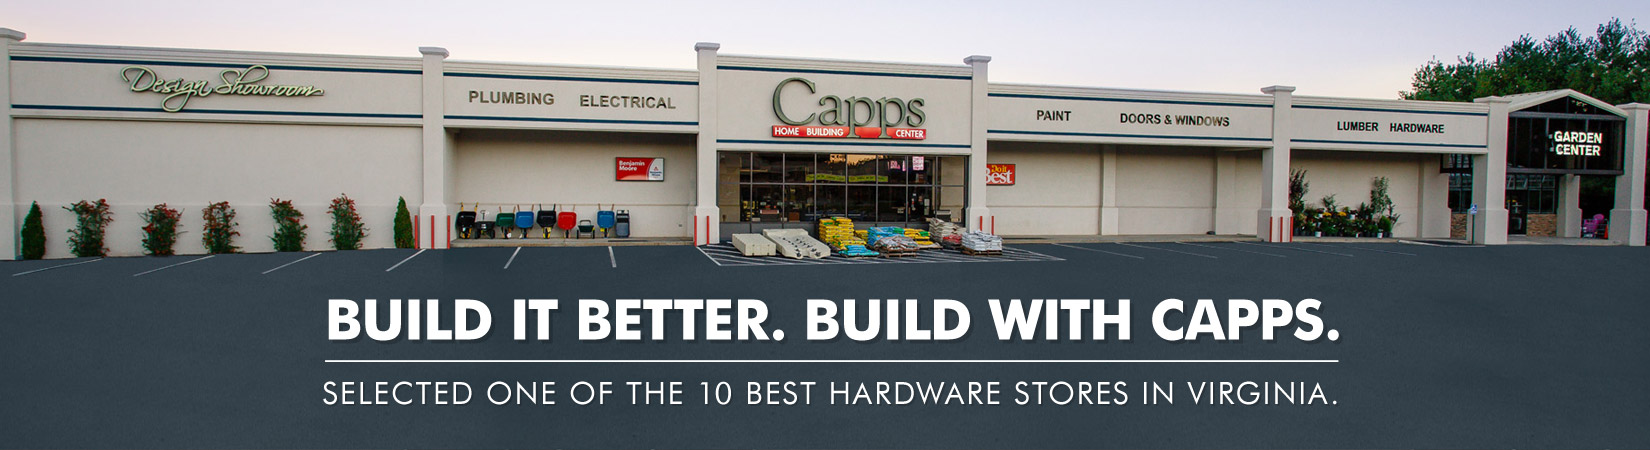 Capps Home Building Center - We're More Than Just A Hardware